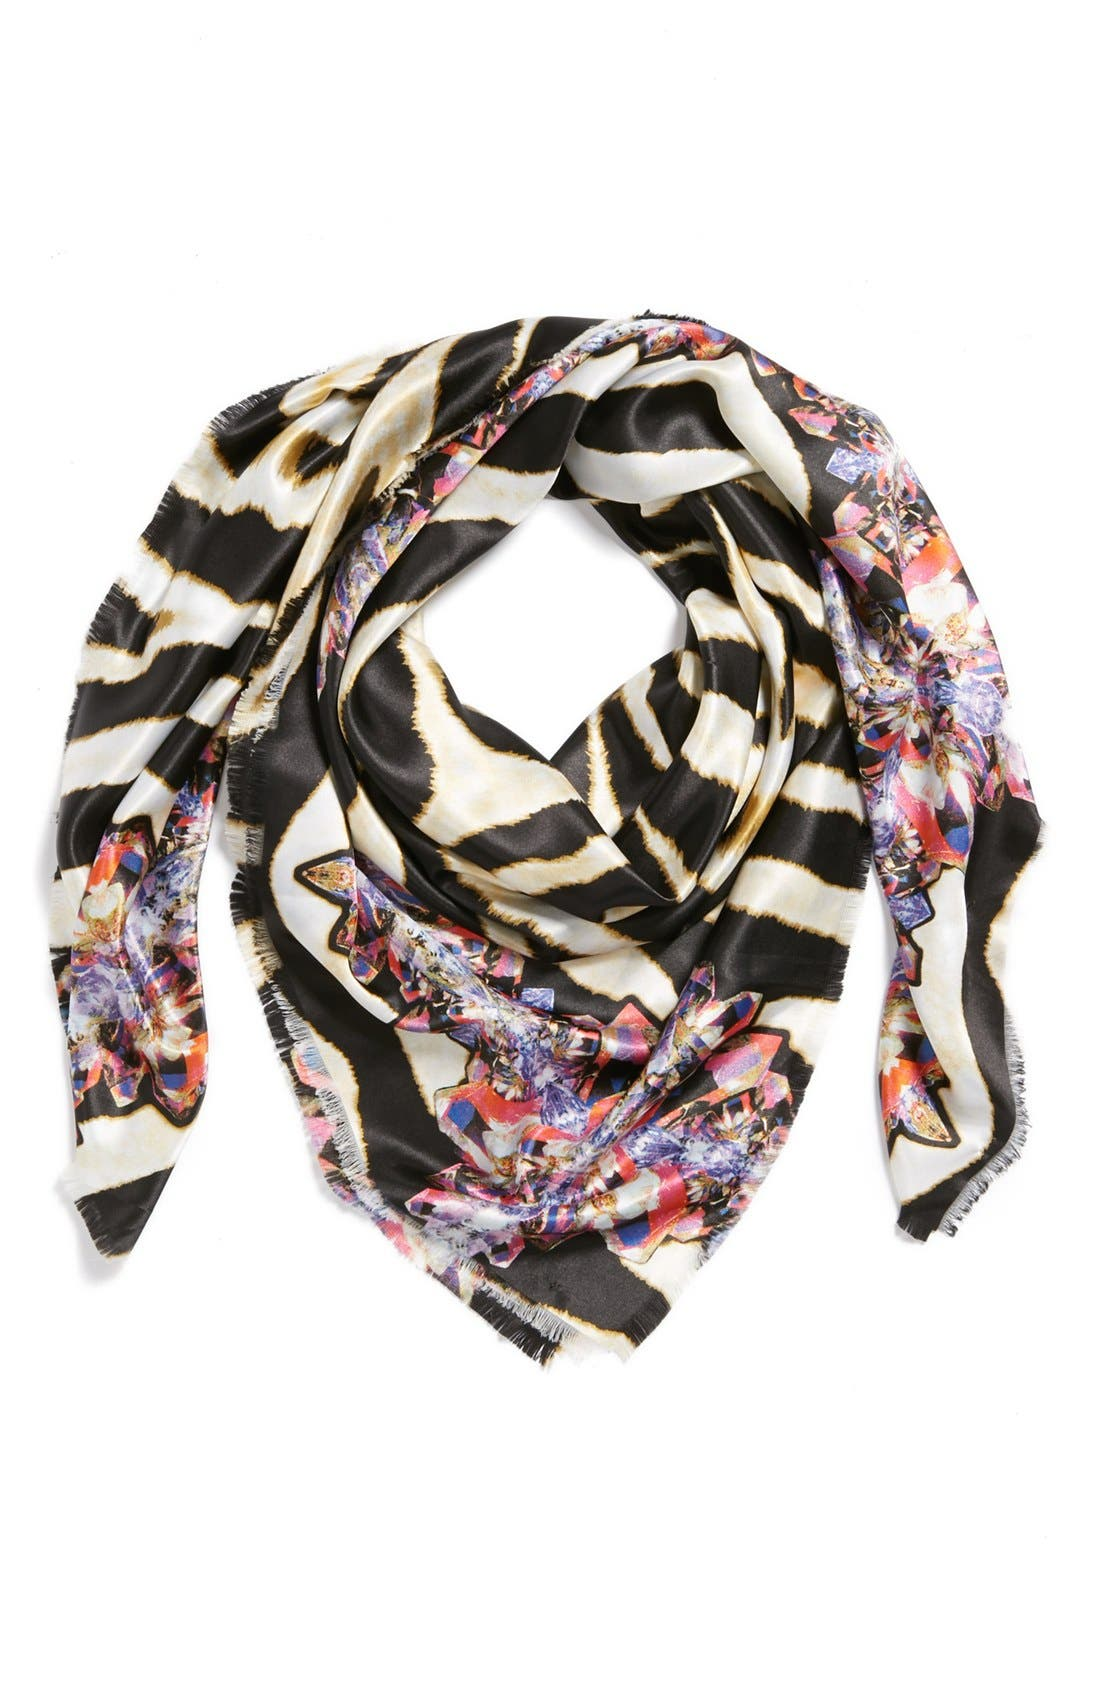 Alternate Image 1 Selected - Accessory Street Floral Scarf